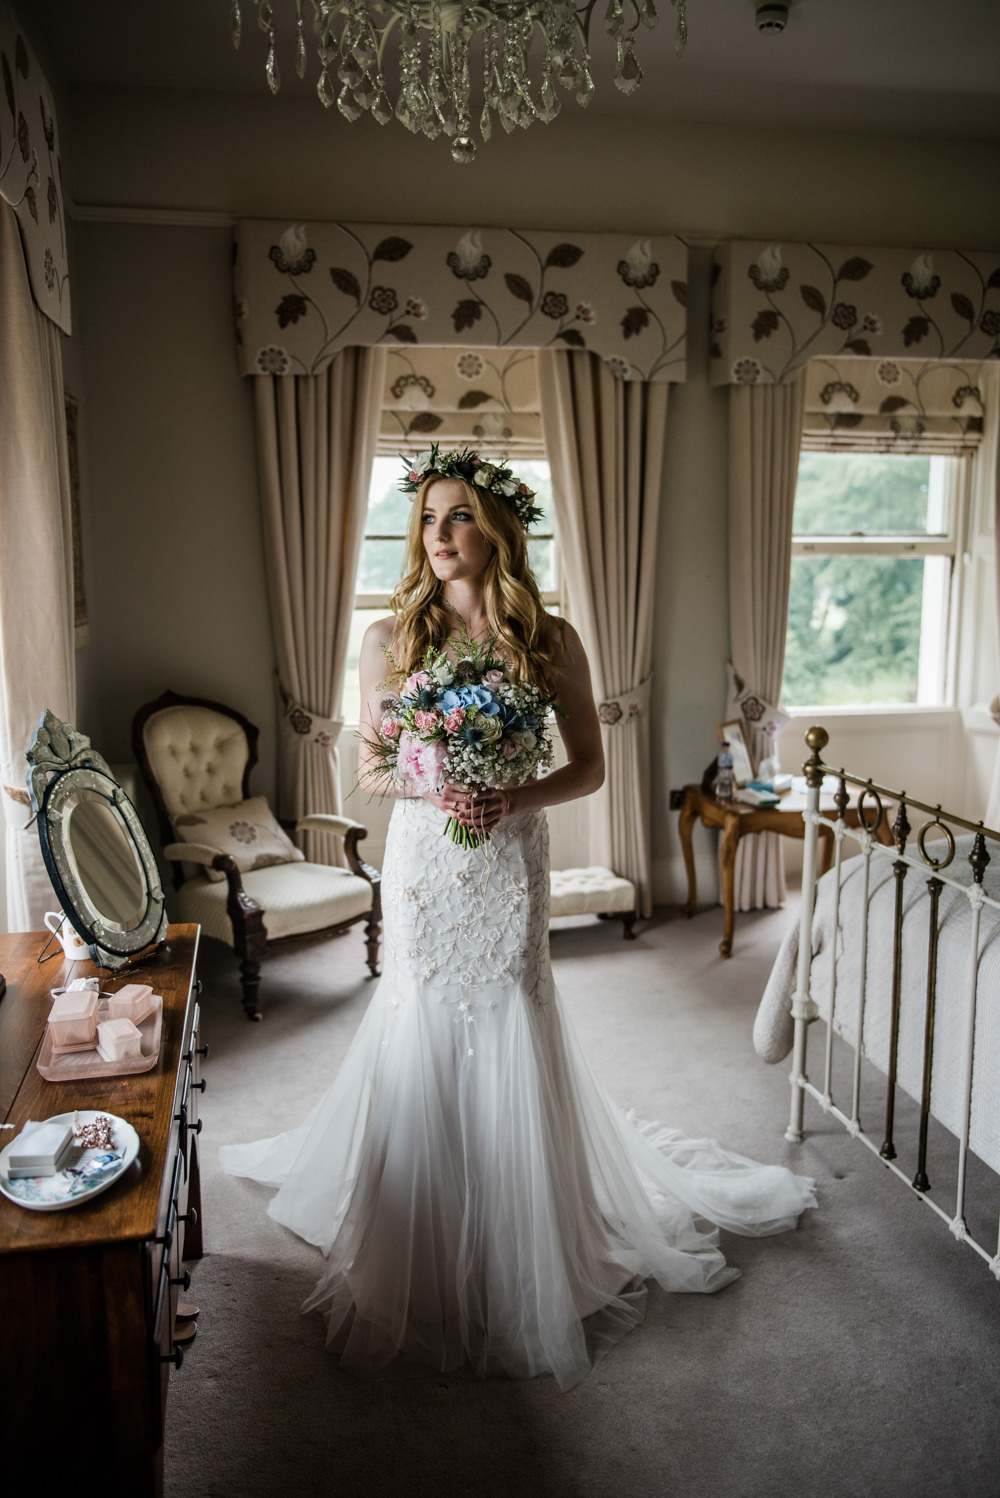 Dress Gown Bride Bridal Tulle Floral Applique Train Straps Embeliished Cleatham Hall Wedding Kazooieloki Photography